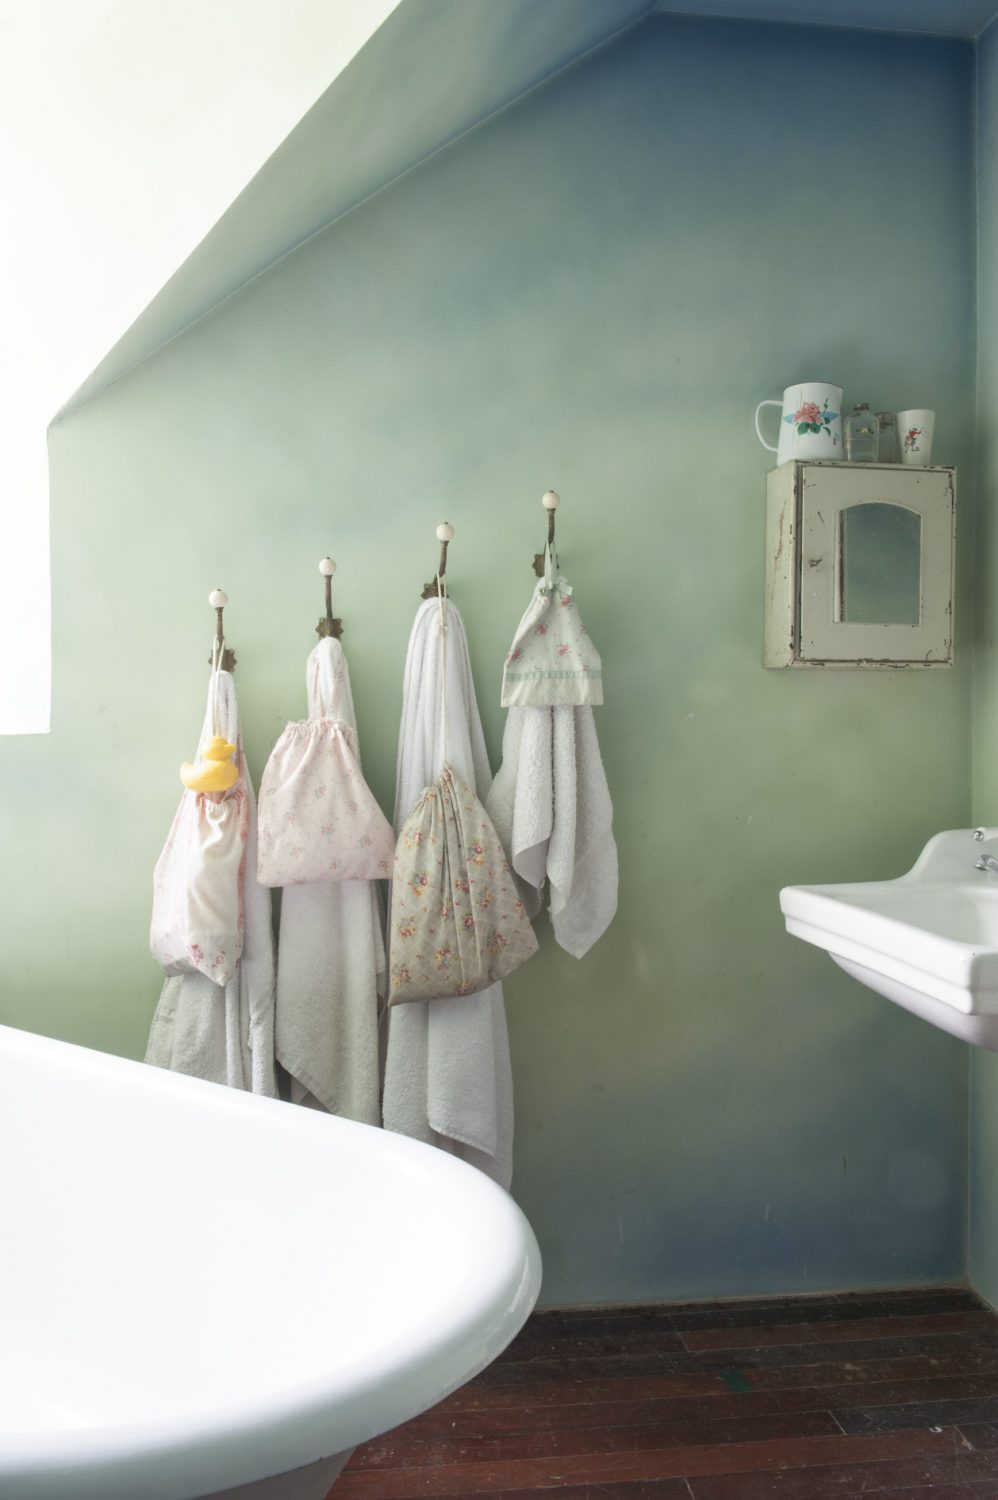 The bespoke children's decoration continues in their bathroom where the walls have been painted in layers of green-blue